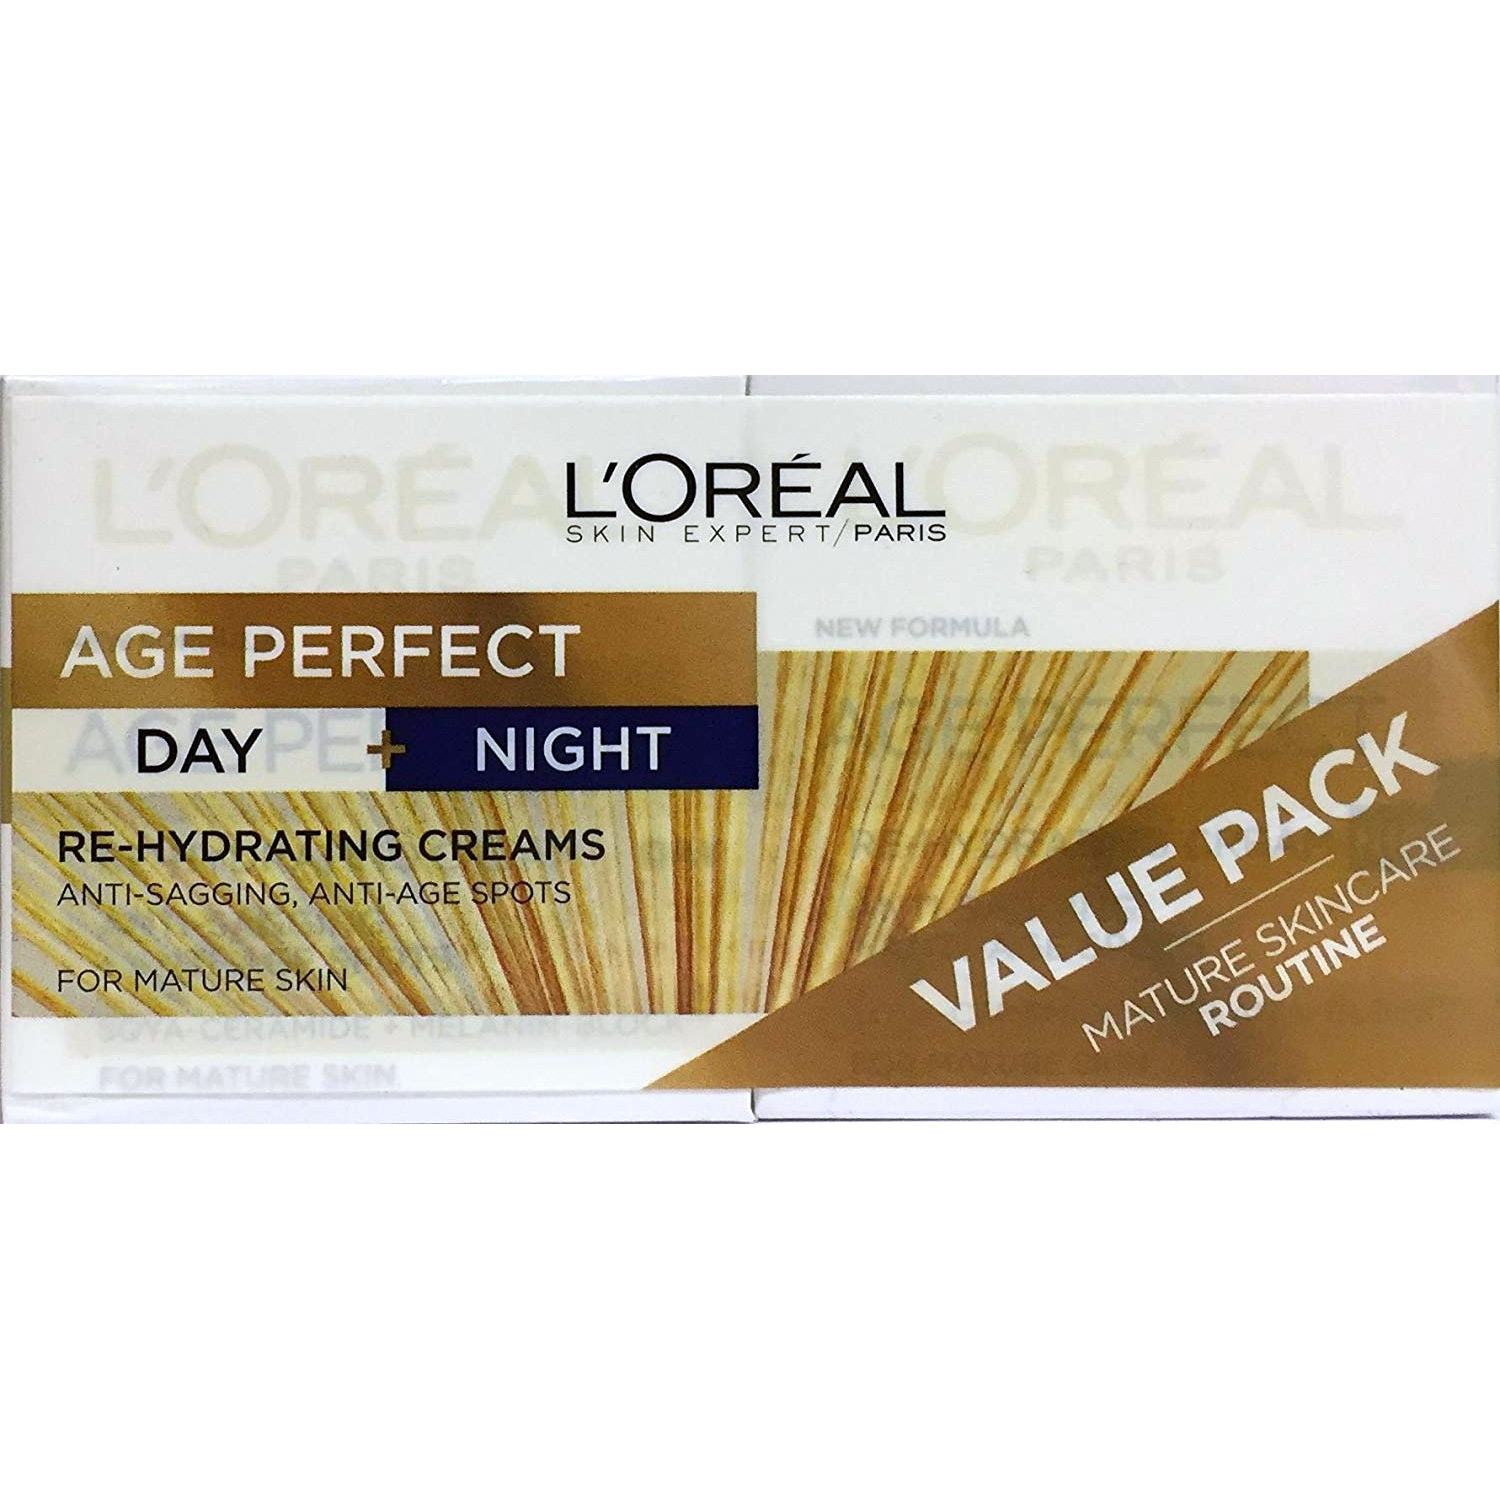 LOREAL AGE PERFECT DAY & NIGHT POTS 2X50ML